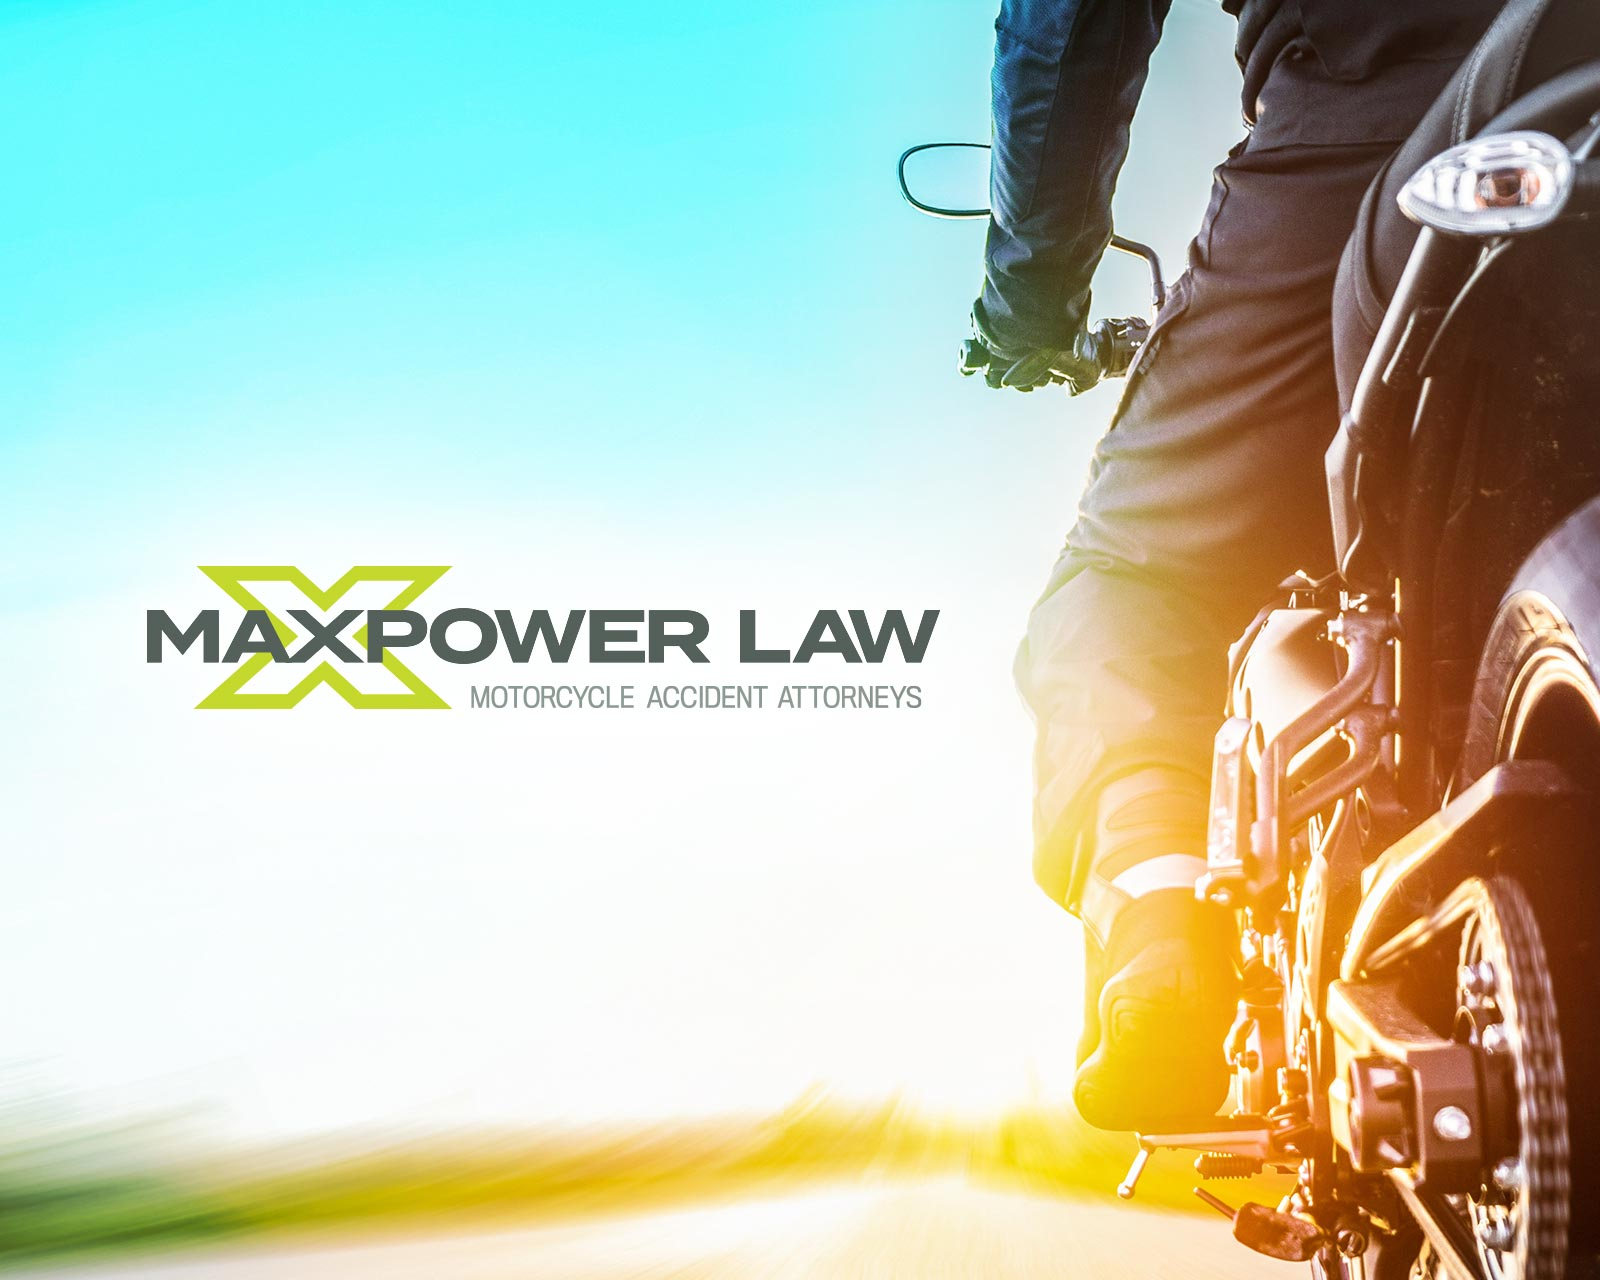 MaxPower Law Brand Commercial